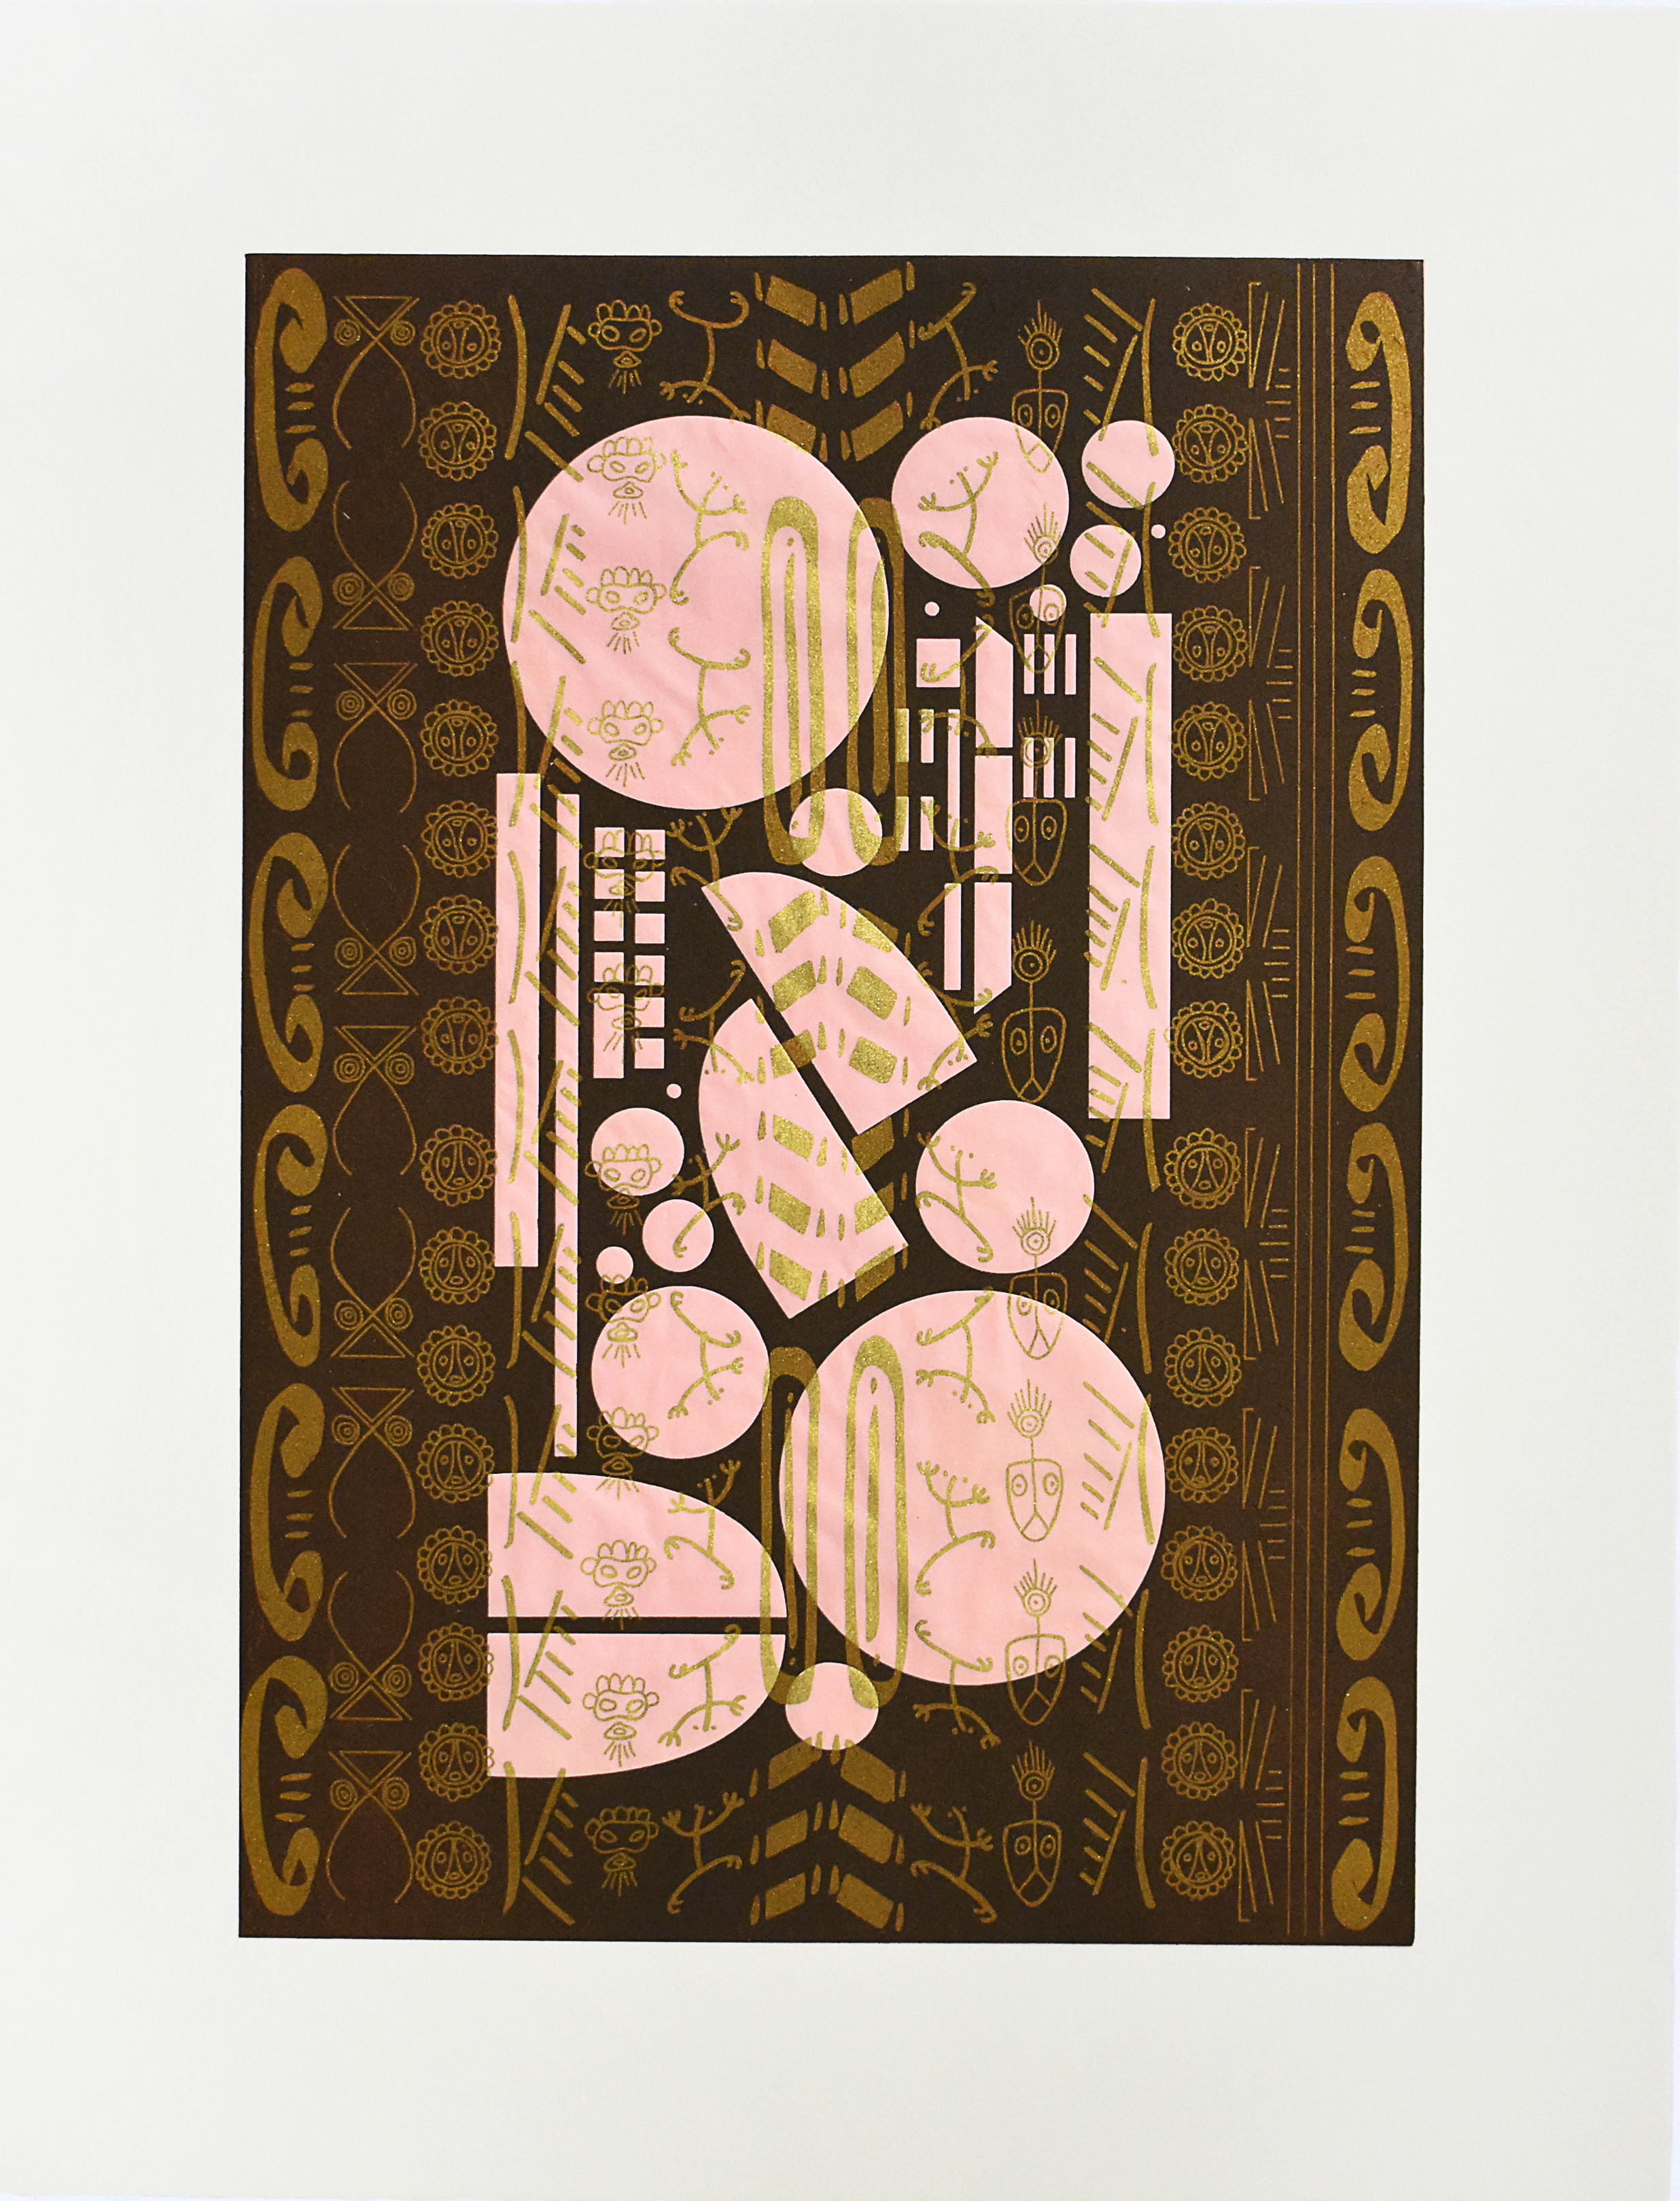 GLENDAYLS MEDINA  BrownPinkTaínoBlackGold  2018  Photolithograph printed in gold ink on pink Yatsuo paper, flocked with gold pigment. Overprinted with brown relief roll from laser cut plexiglass; 26 x 20 in. Edition: 10